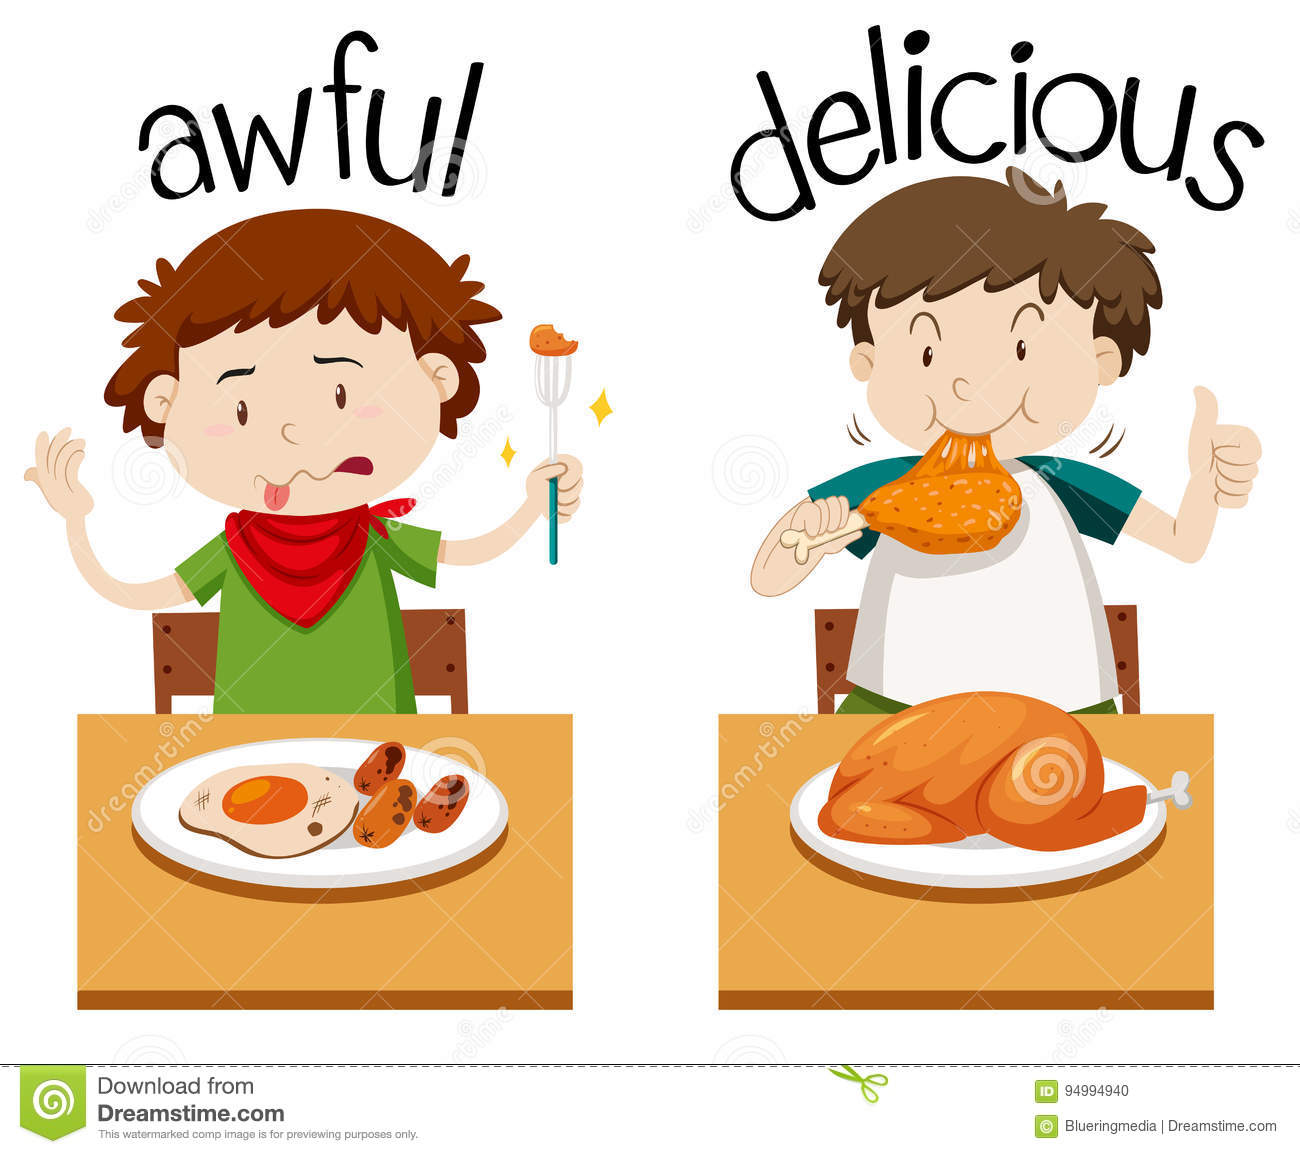 Delicious Cartoons, Illustrations & Vector Stock Images ...